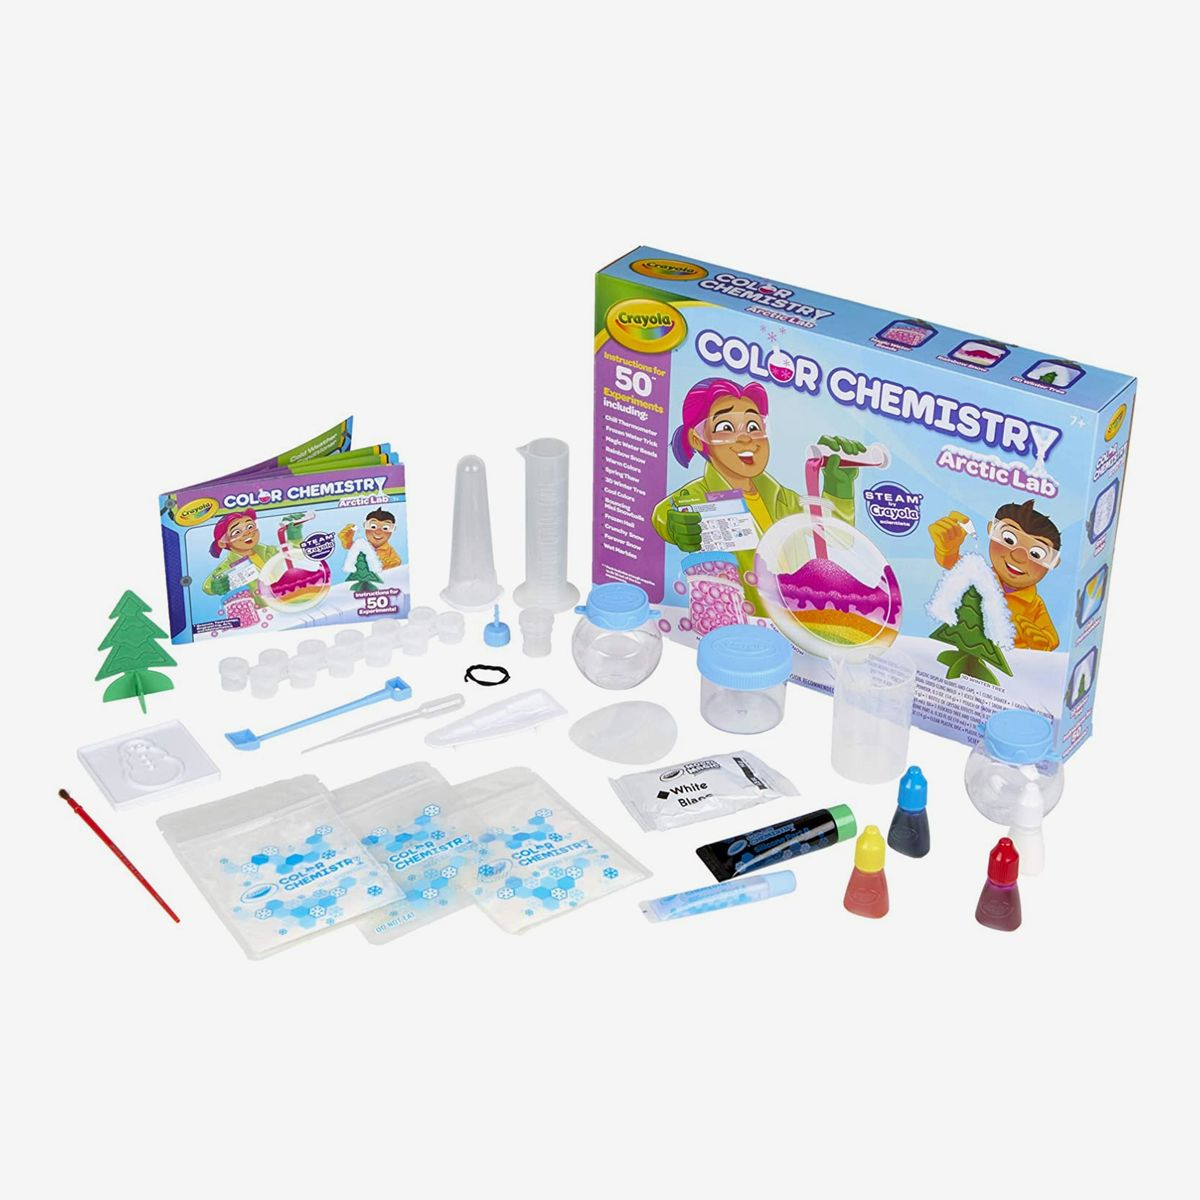 28 Best Toys For 6 Year Olds 2020 The Strategist New York Magazine